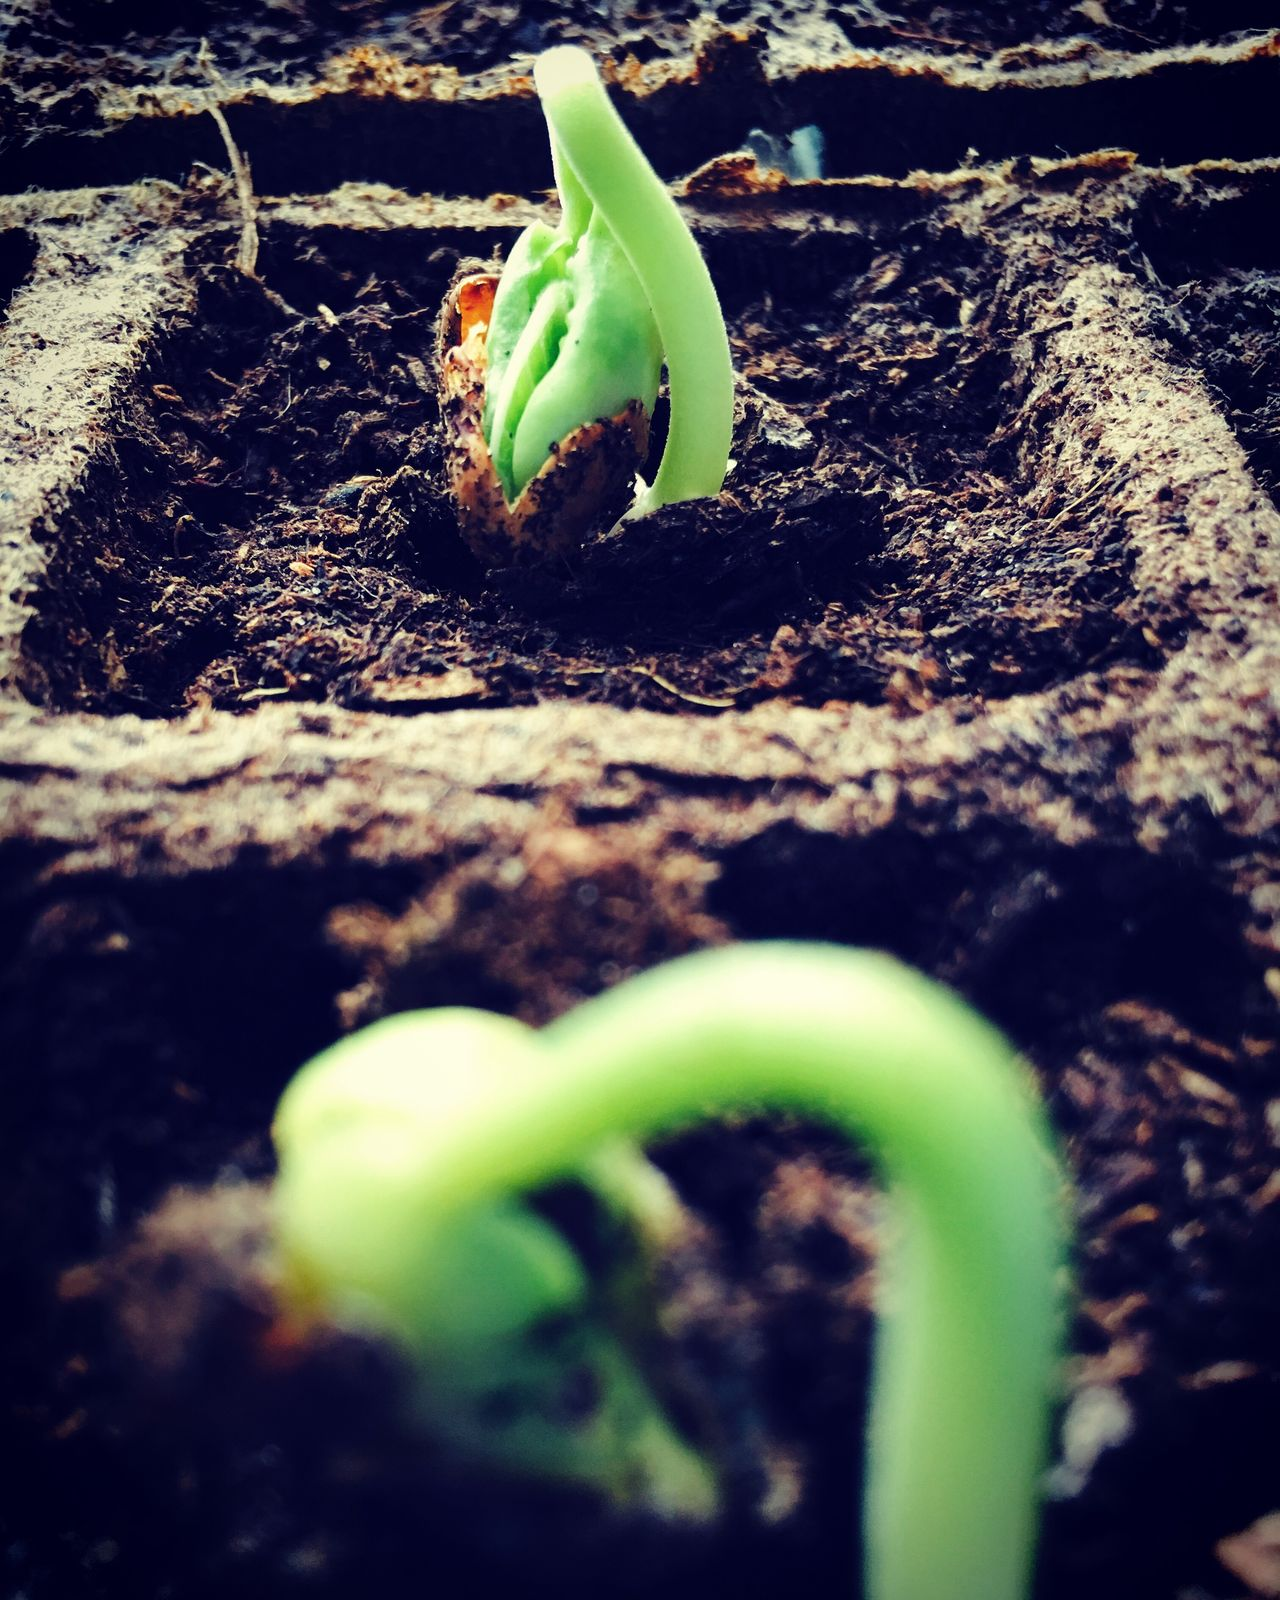 Growth New Life Nature Plant Day Fragility Green Color No People Ground Close-up Beginnings EyeEm Nature Lover Freshness Bean Sprouts Bean Garden Macro Photography Macro_collection EyeEm Best Shots Spring Gardening Urban Garden Natural Light